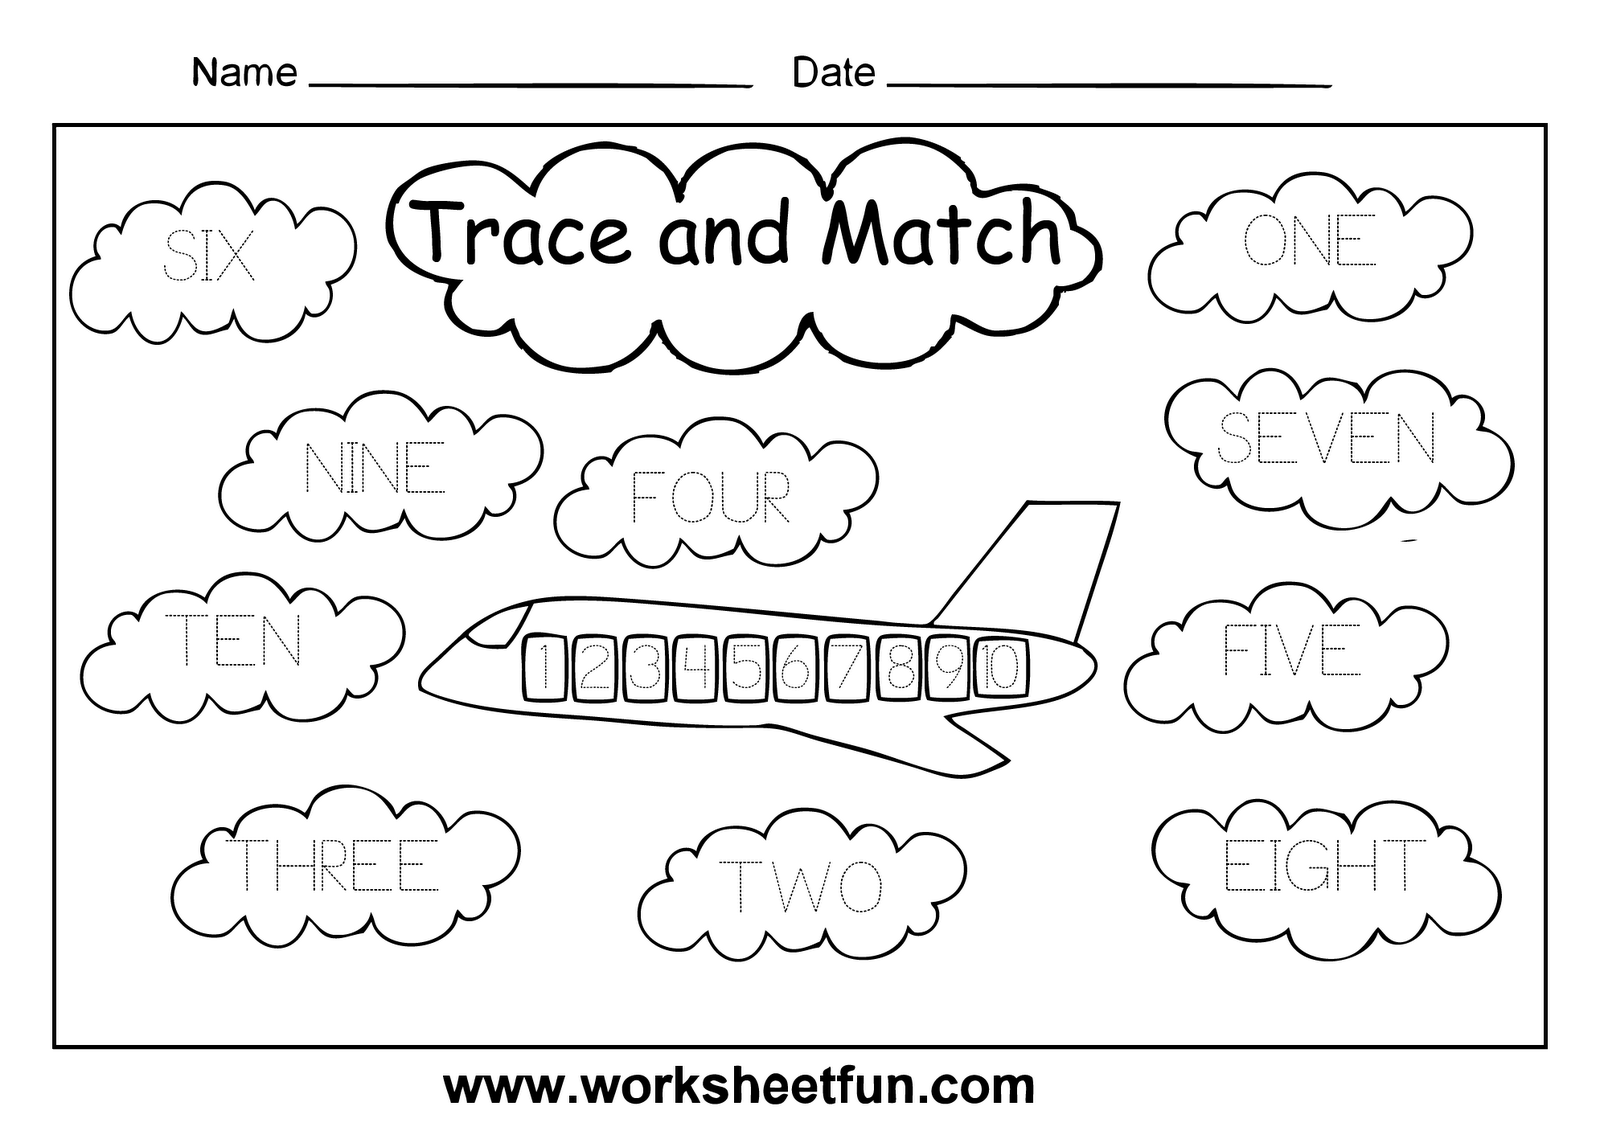 Weirdmailus  Mesmerizing Worksheet Numbers    Reocurent With Exquisite Free Printable Inference Worksheets Besides S Multiplication Worksheet Furthermore Kindergarten Science Worksheet With Enchanting Genetic Disorder Worksheet Also Capital Worksheets In Addition Free Preschool Printables Worksheets And Fact Triangles Worksheets As Well As Tectonic Plate Boundaries Worksheet Additionally Marine Corps Pros And Cons Worksheet From Reocurentcom With Weirdmailus  Exquisite Worksheet Numbers    Reocurent With Enchanting Free Printable Inference Worksheets Besides S Multiplication Worksheet Furthermore Kindergarten Science Worksheet And Mesmerizing Genetic Disorder Worksheet Also Capital Worksheets In Addition Free Preschool Printables Worksheets From Reocurentcom